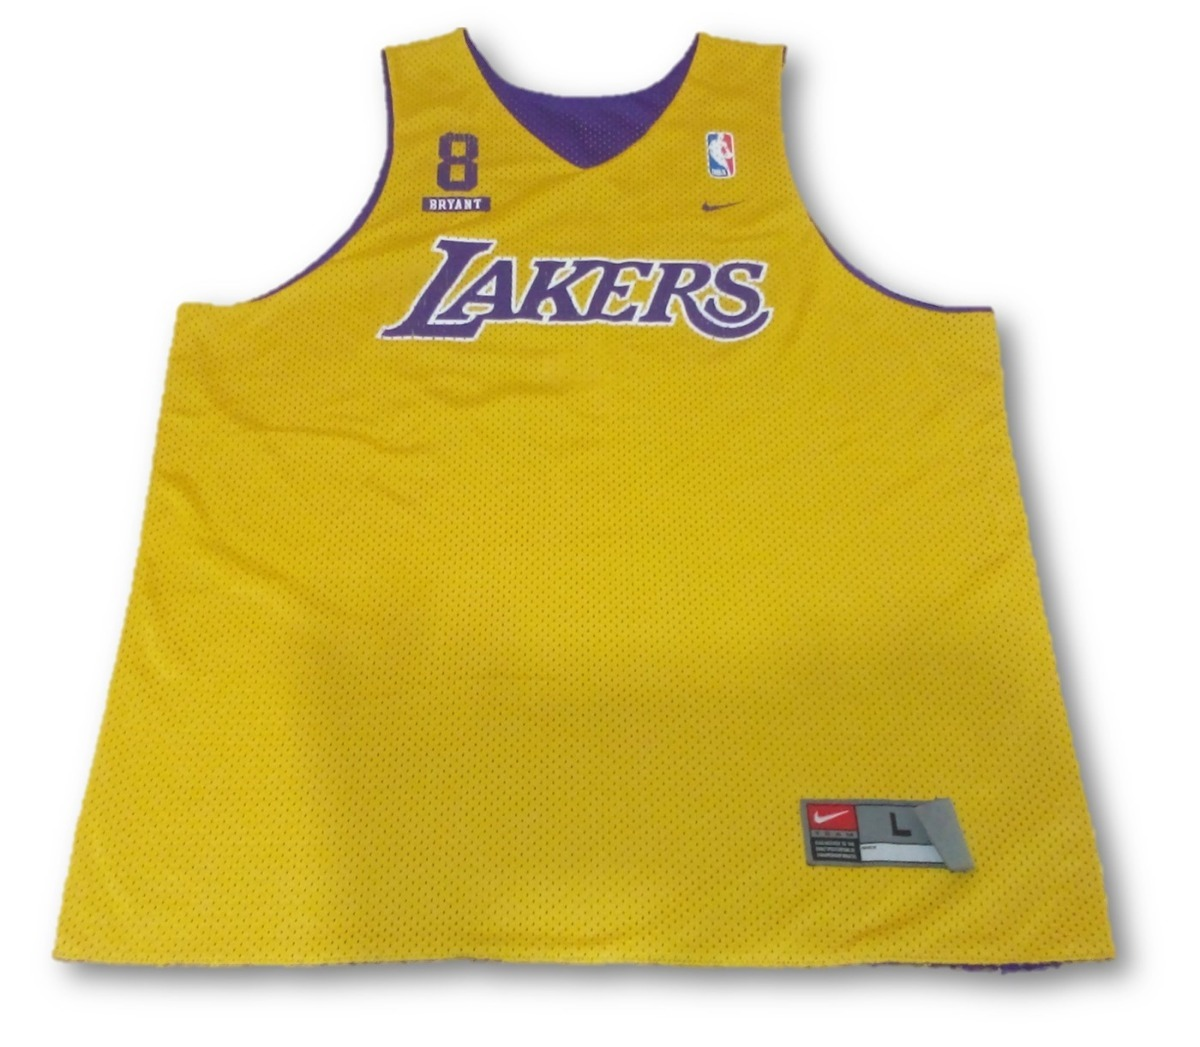 a114214aba29 ... official store camisa jersey nike los angeles lakers 8 kobe bryant 1998  2fc. carregando zoom